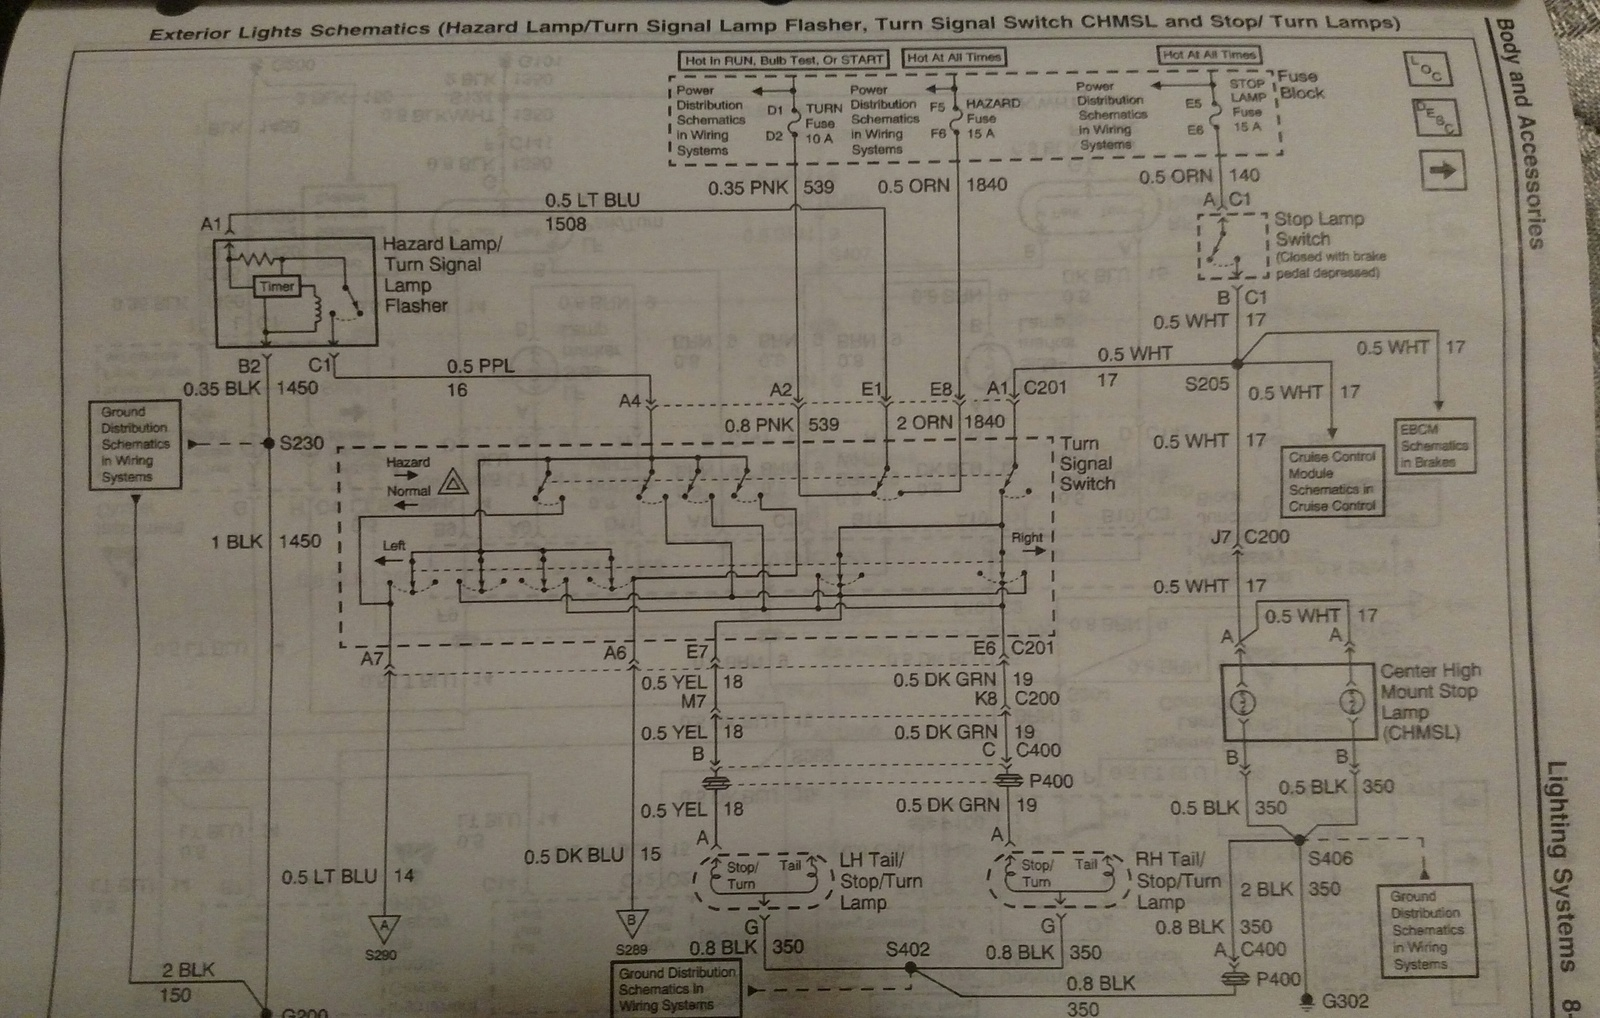 02 Grand Prix Wiring Diagram List Of Schematic Circuit 2001 Pontiac Sunfire Ignition Switch Questions I Have A 2002 Rh Cargurus Com